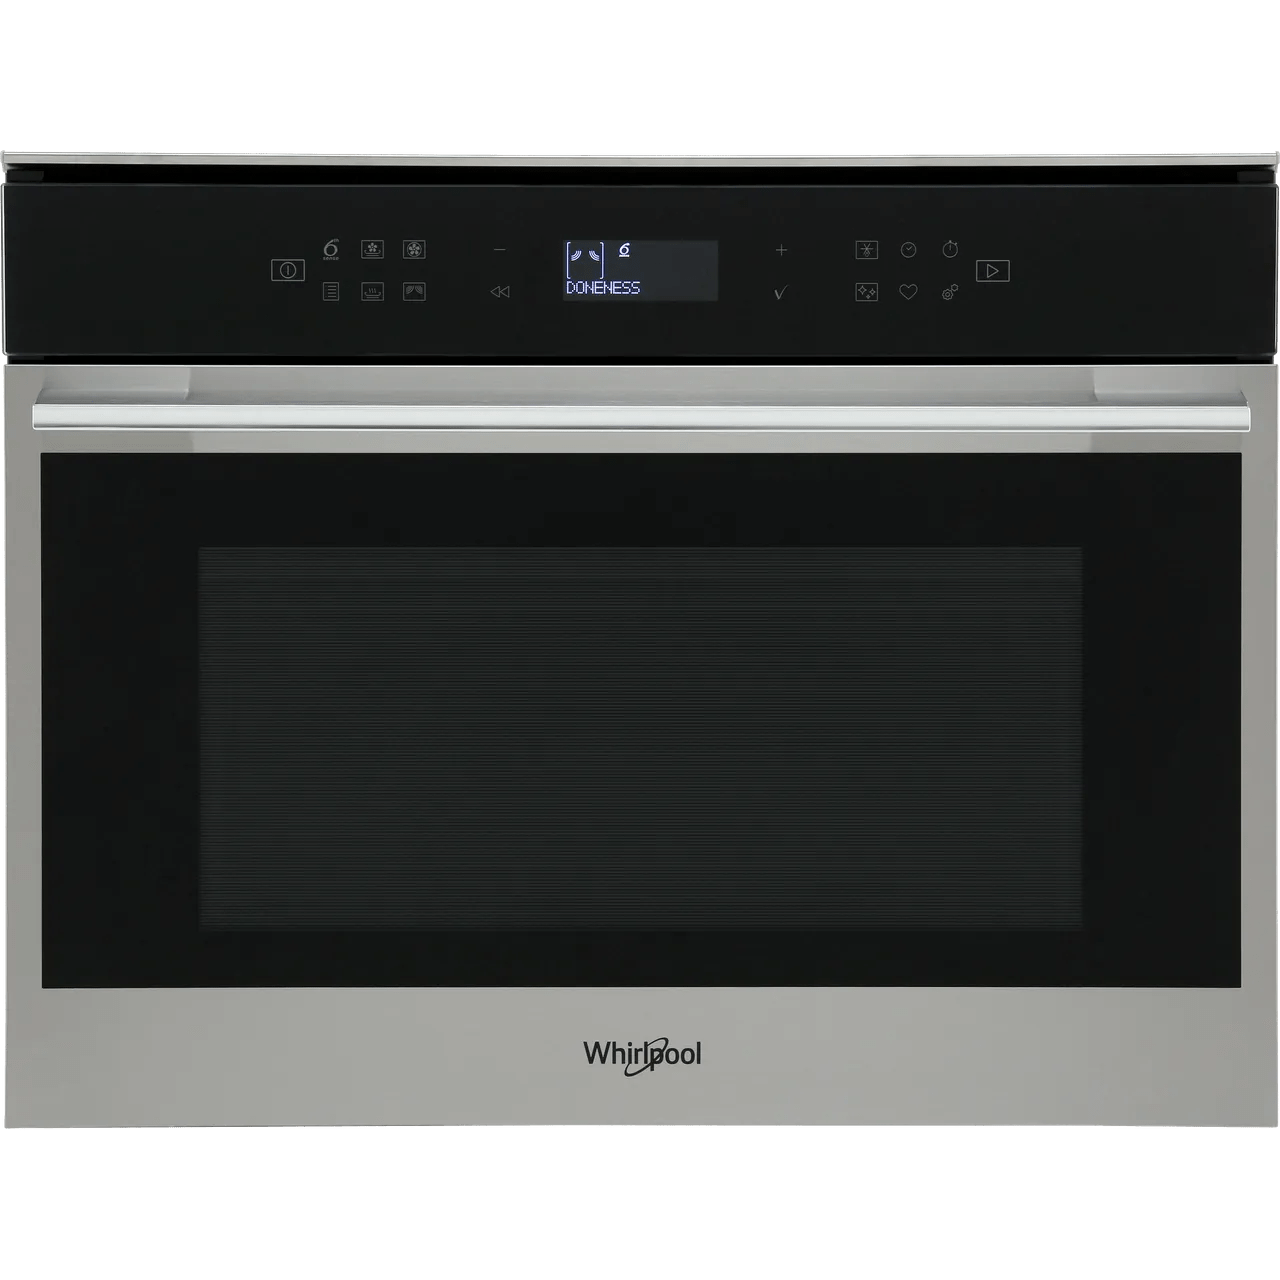 whirlpool w collection w7mw461uk built in combination microwave oven stainless steel